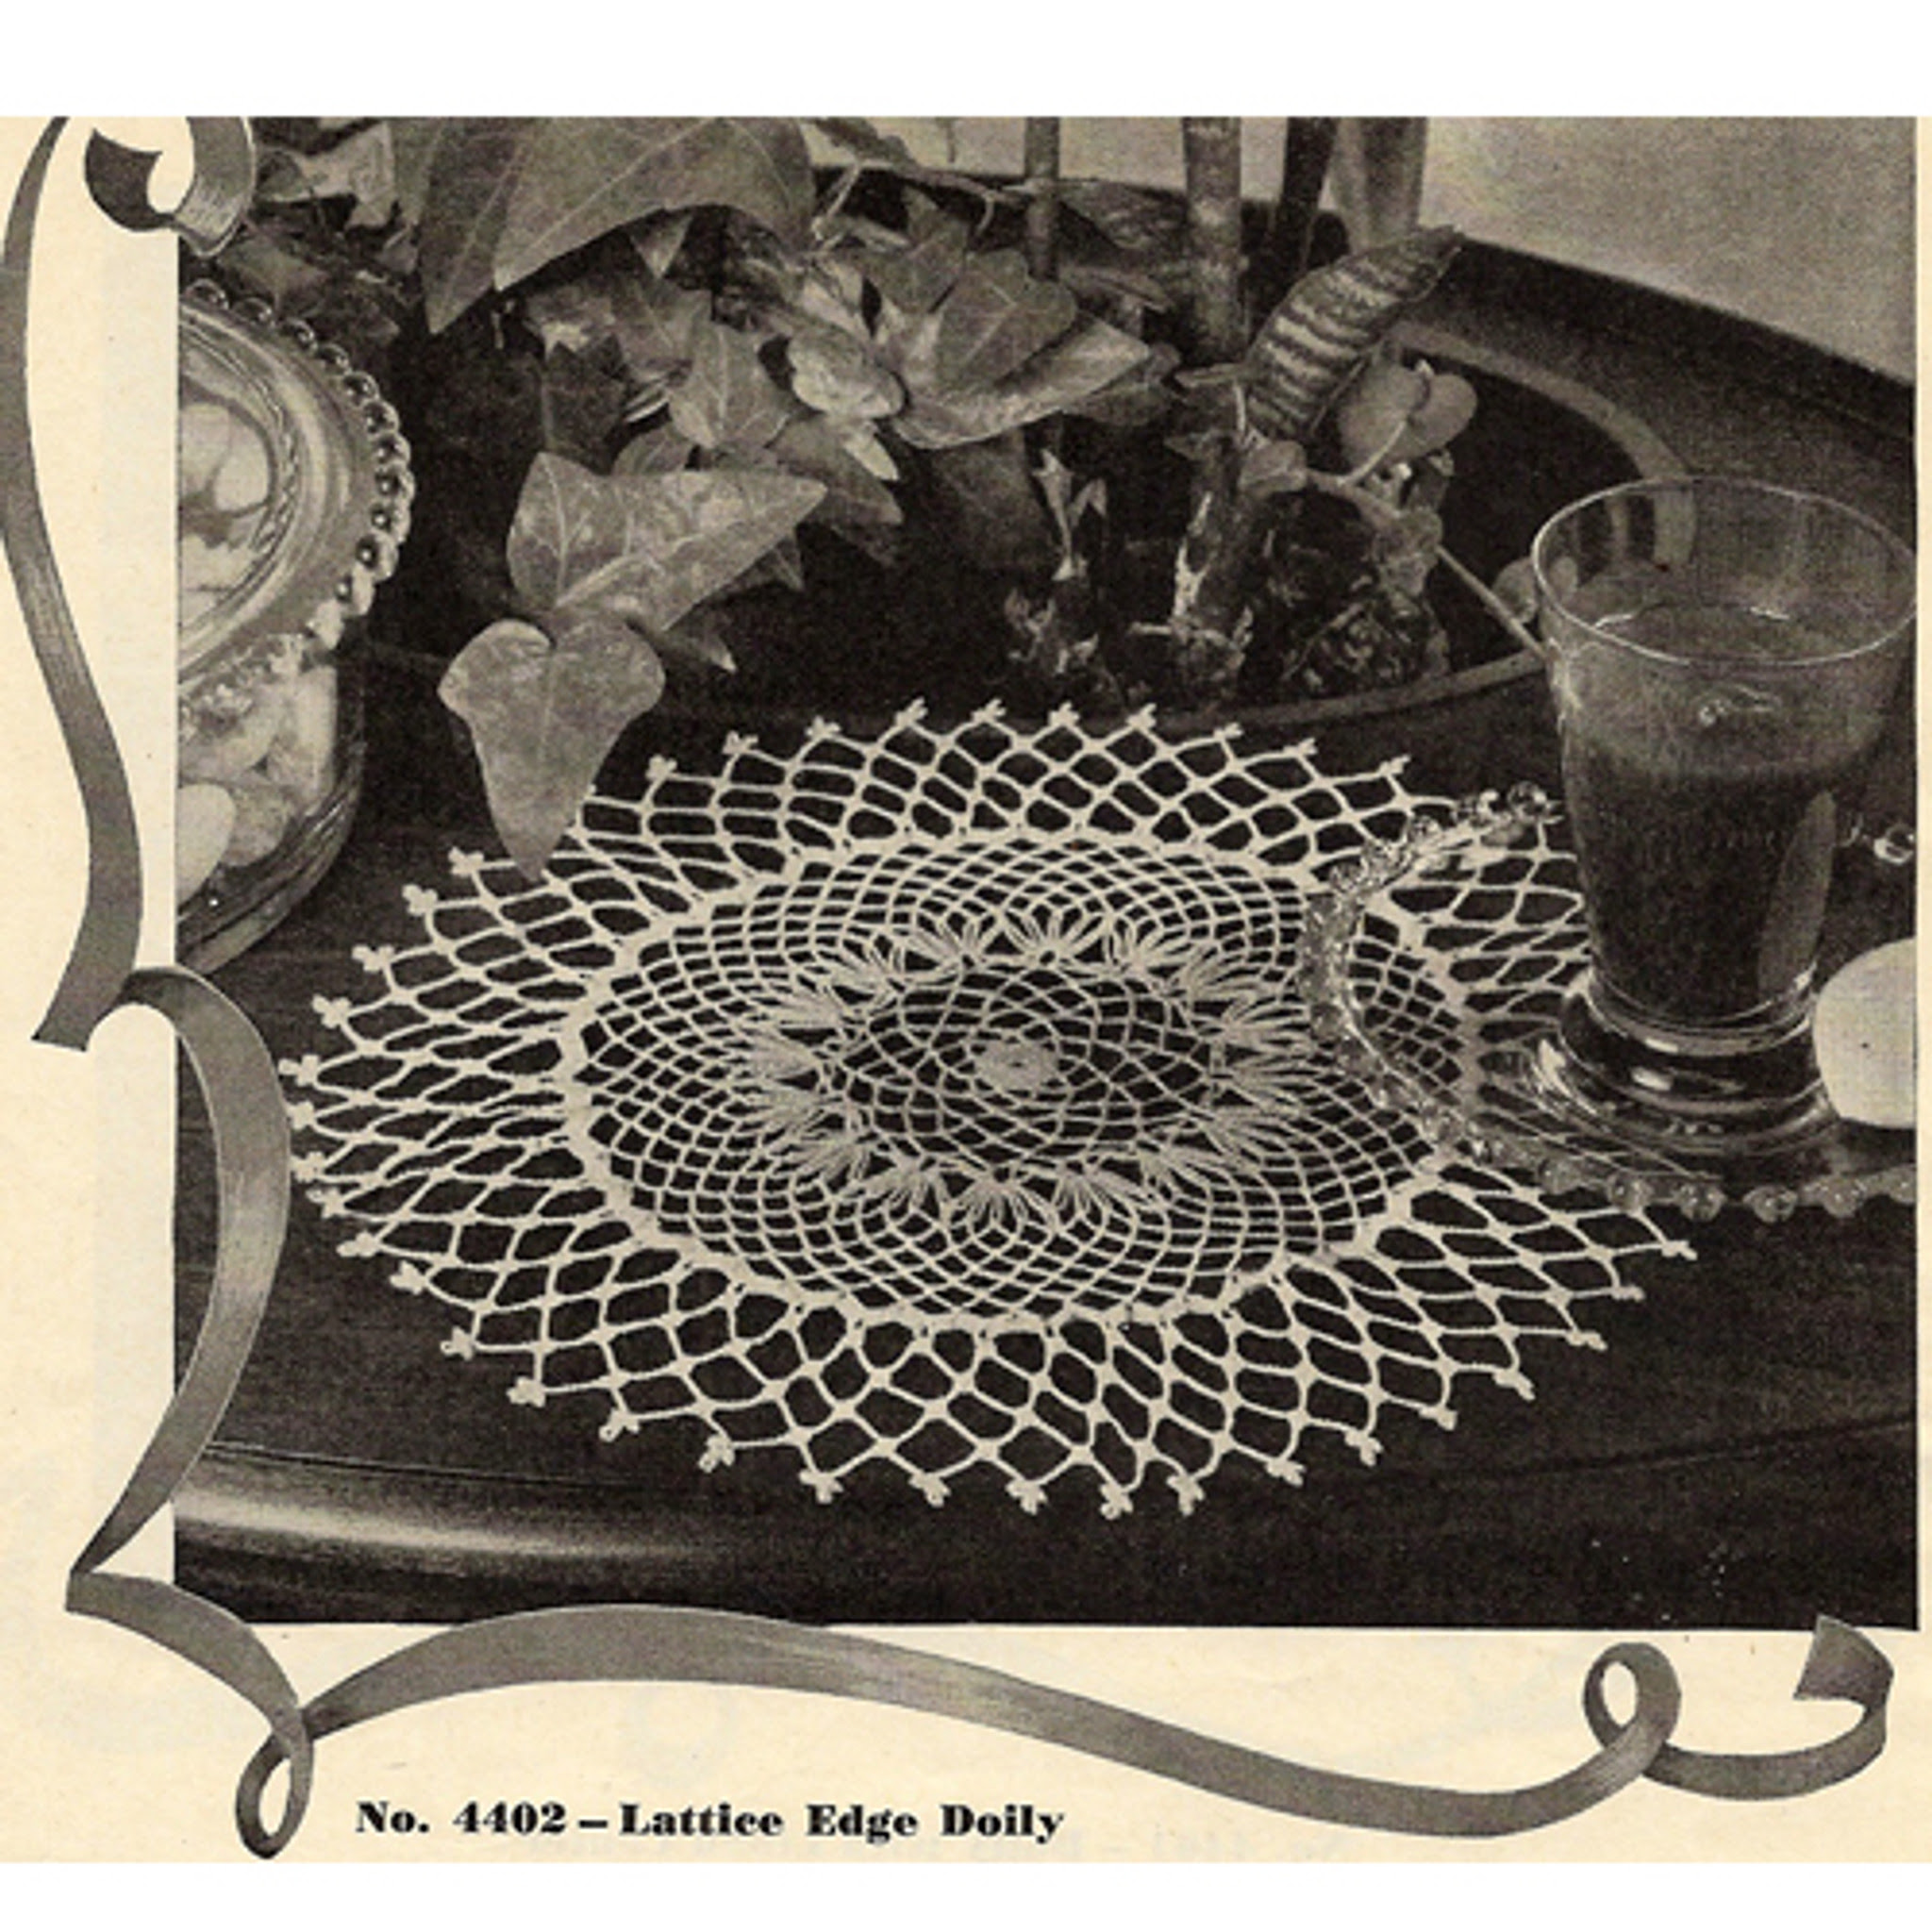 Crochet Doily Pattern No 4402, Lattice Doily